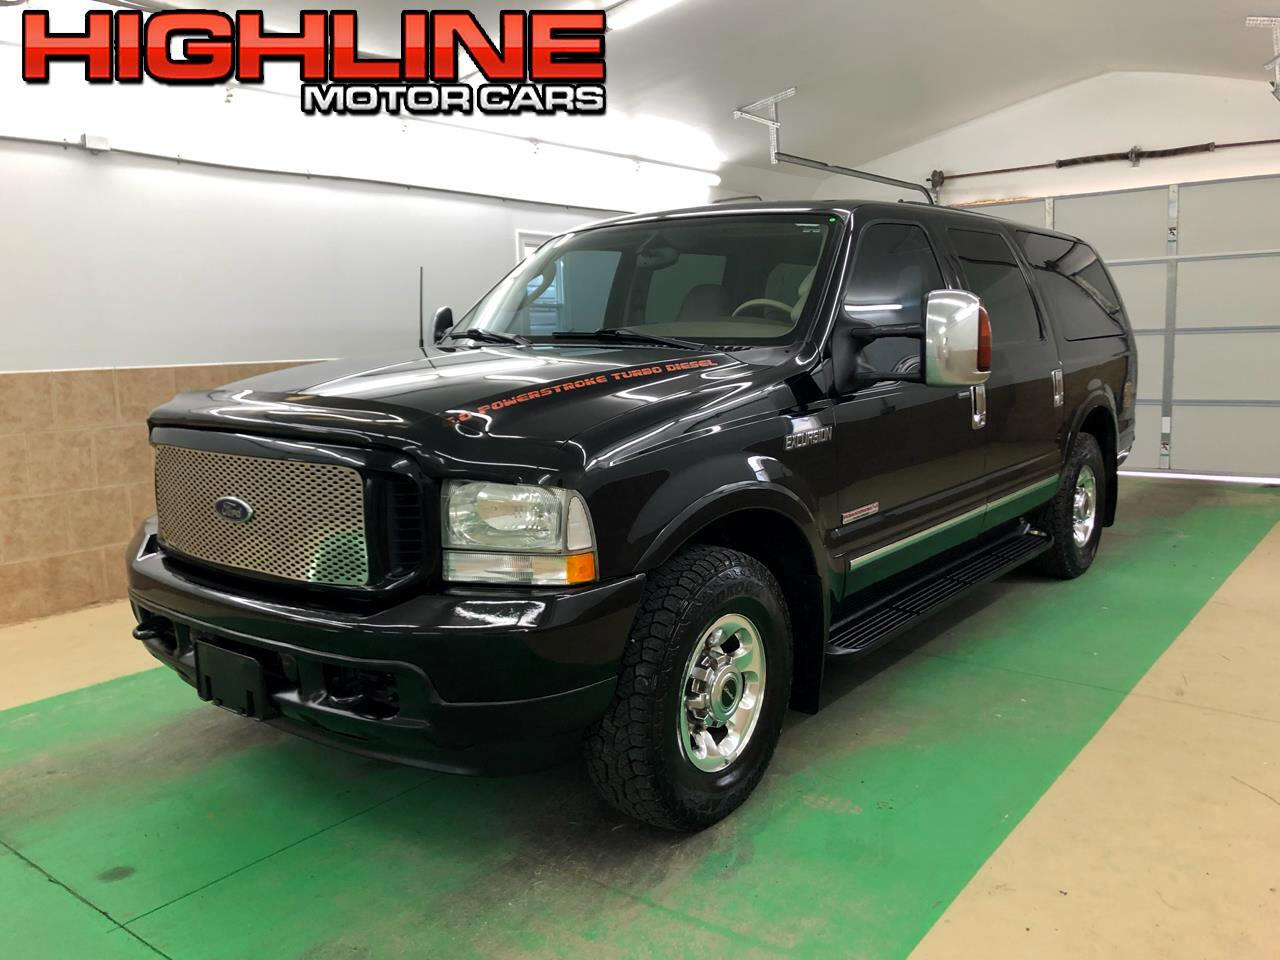 2004 Ford Excursion 137